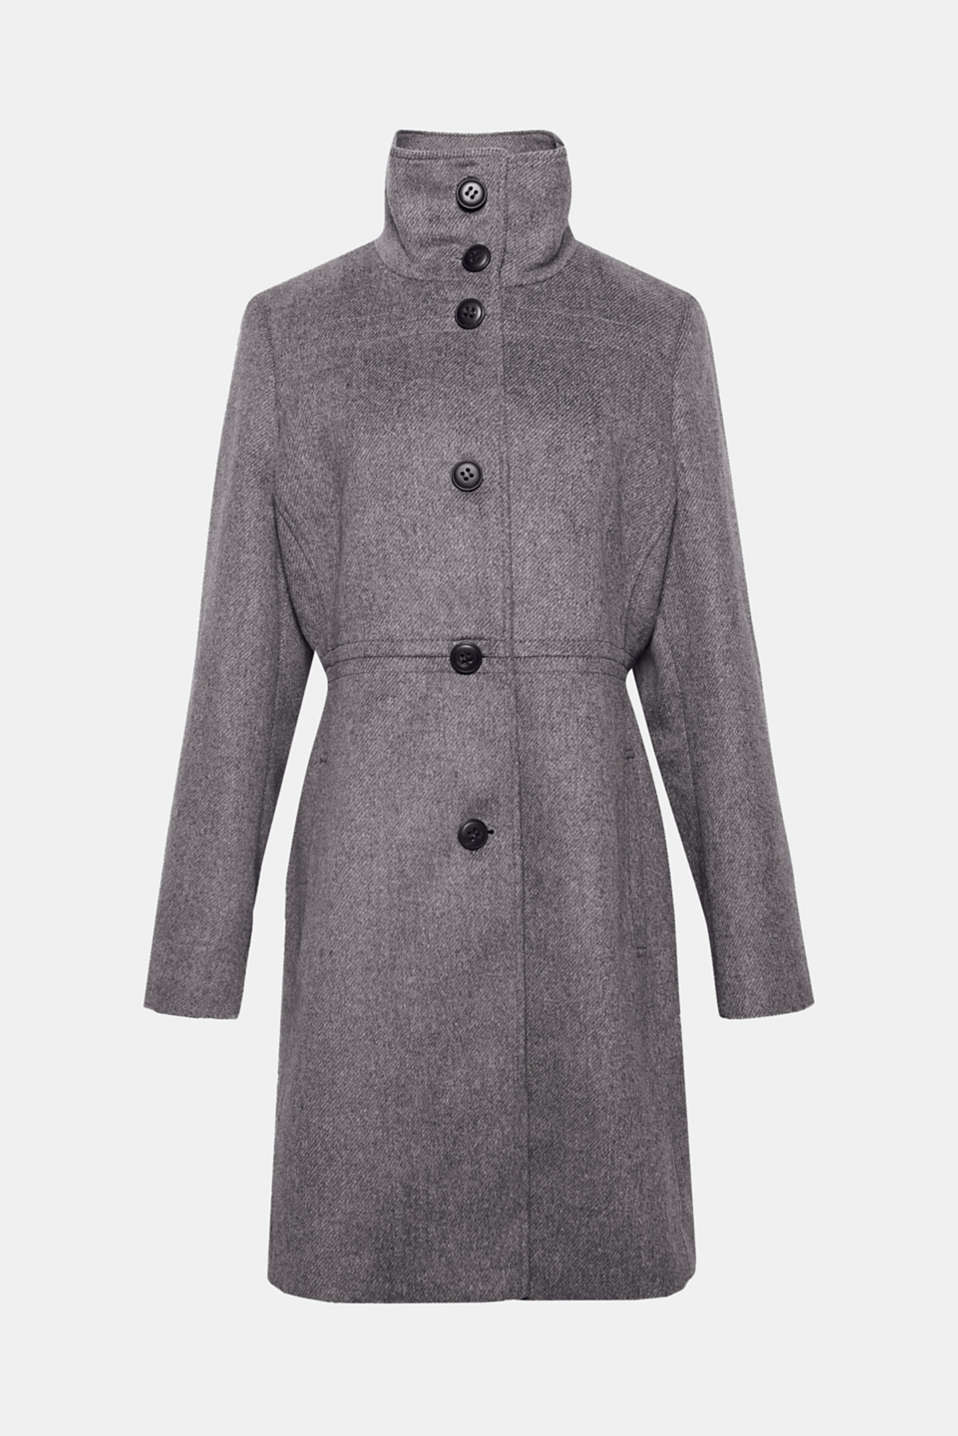 The softly draped, high stand-up collar accentuates the feminine style of this fitted coat in a high-quality wool blend!